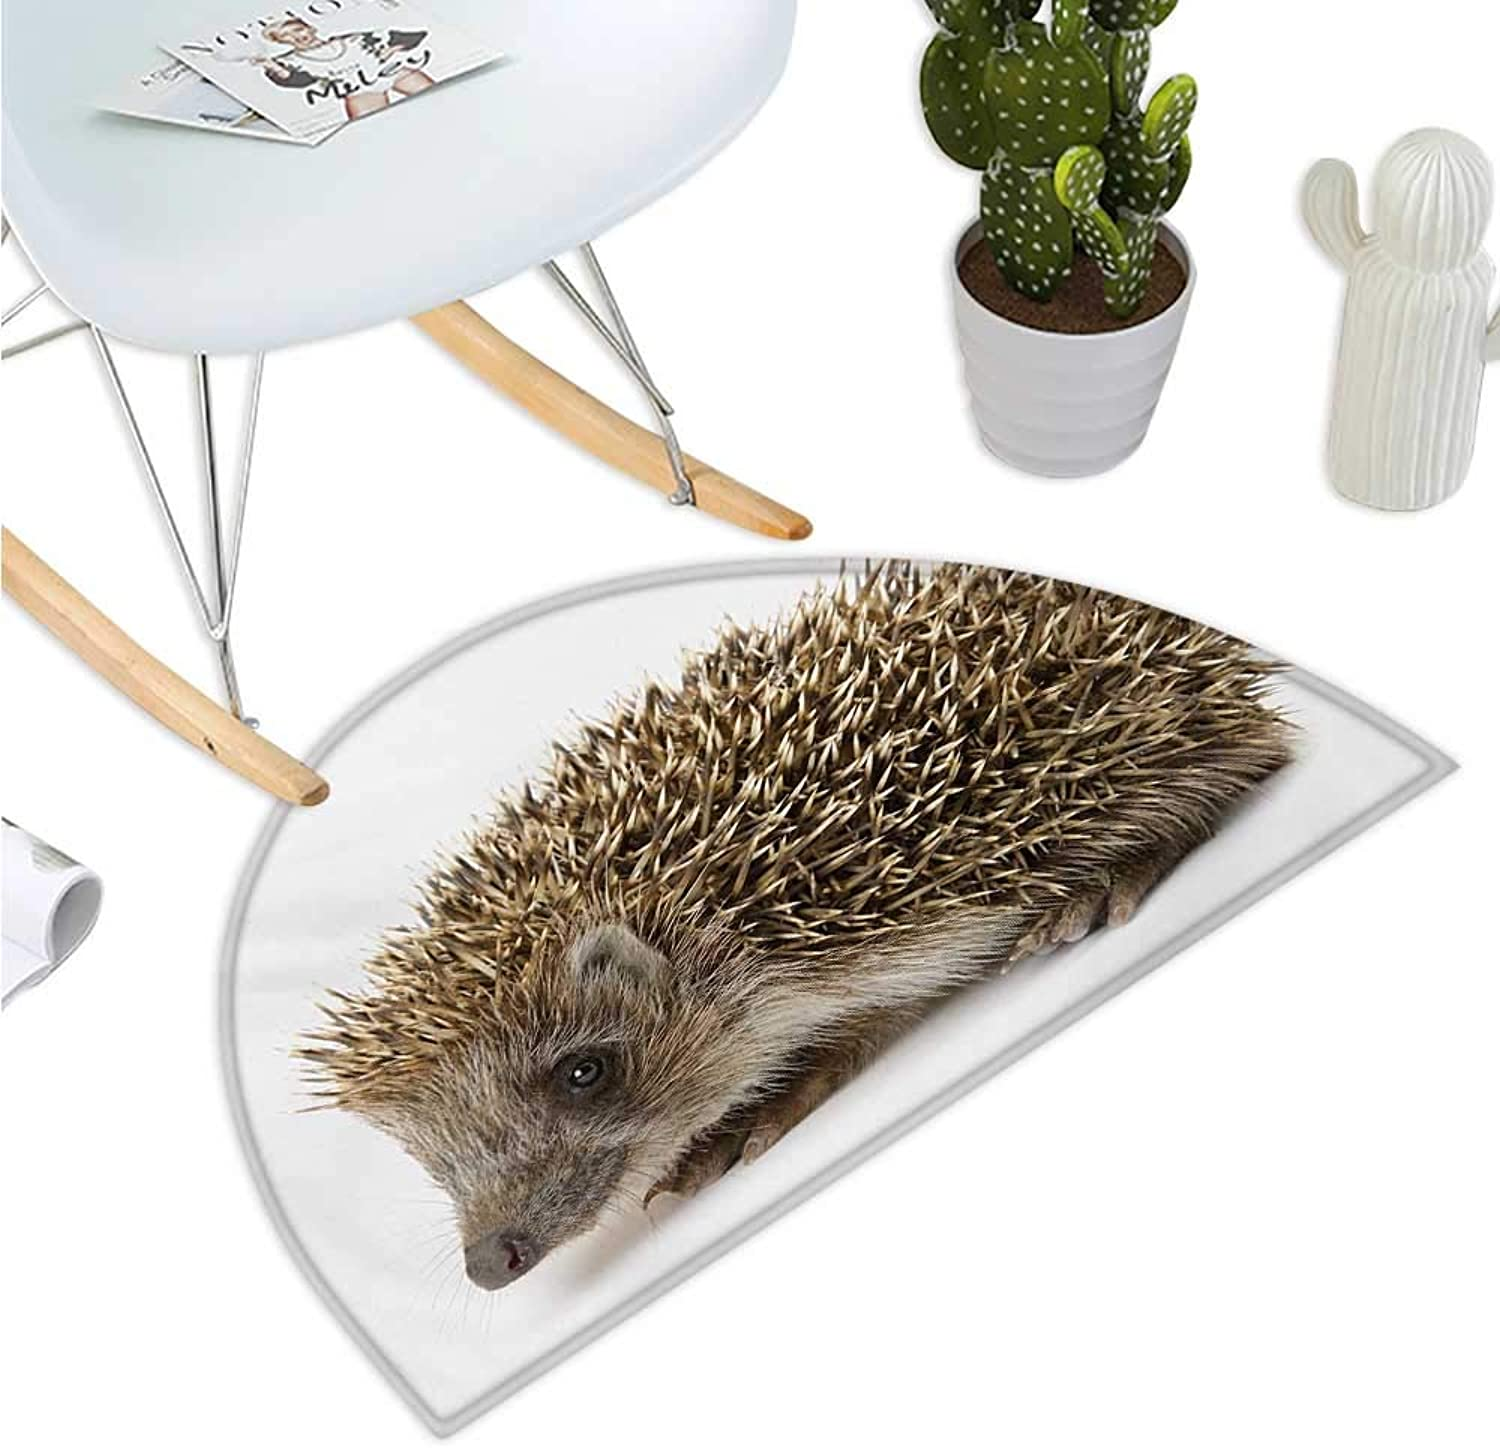 Hedgehog Semicircular Cushion Small Cute Mammal with Spiked Hair on Its Back and Sides Wildlife Photography Halfmoon doormats H 35.4  xD 53.1  Cocoa Brown